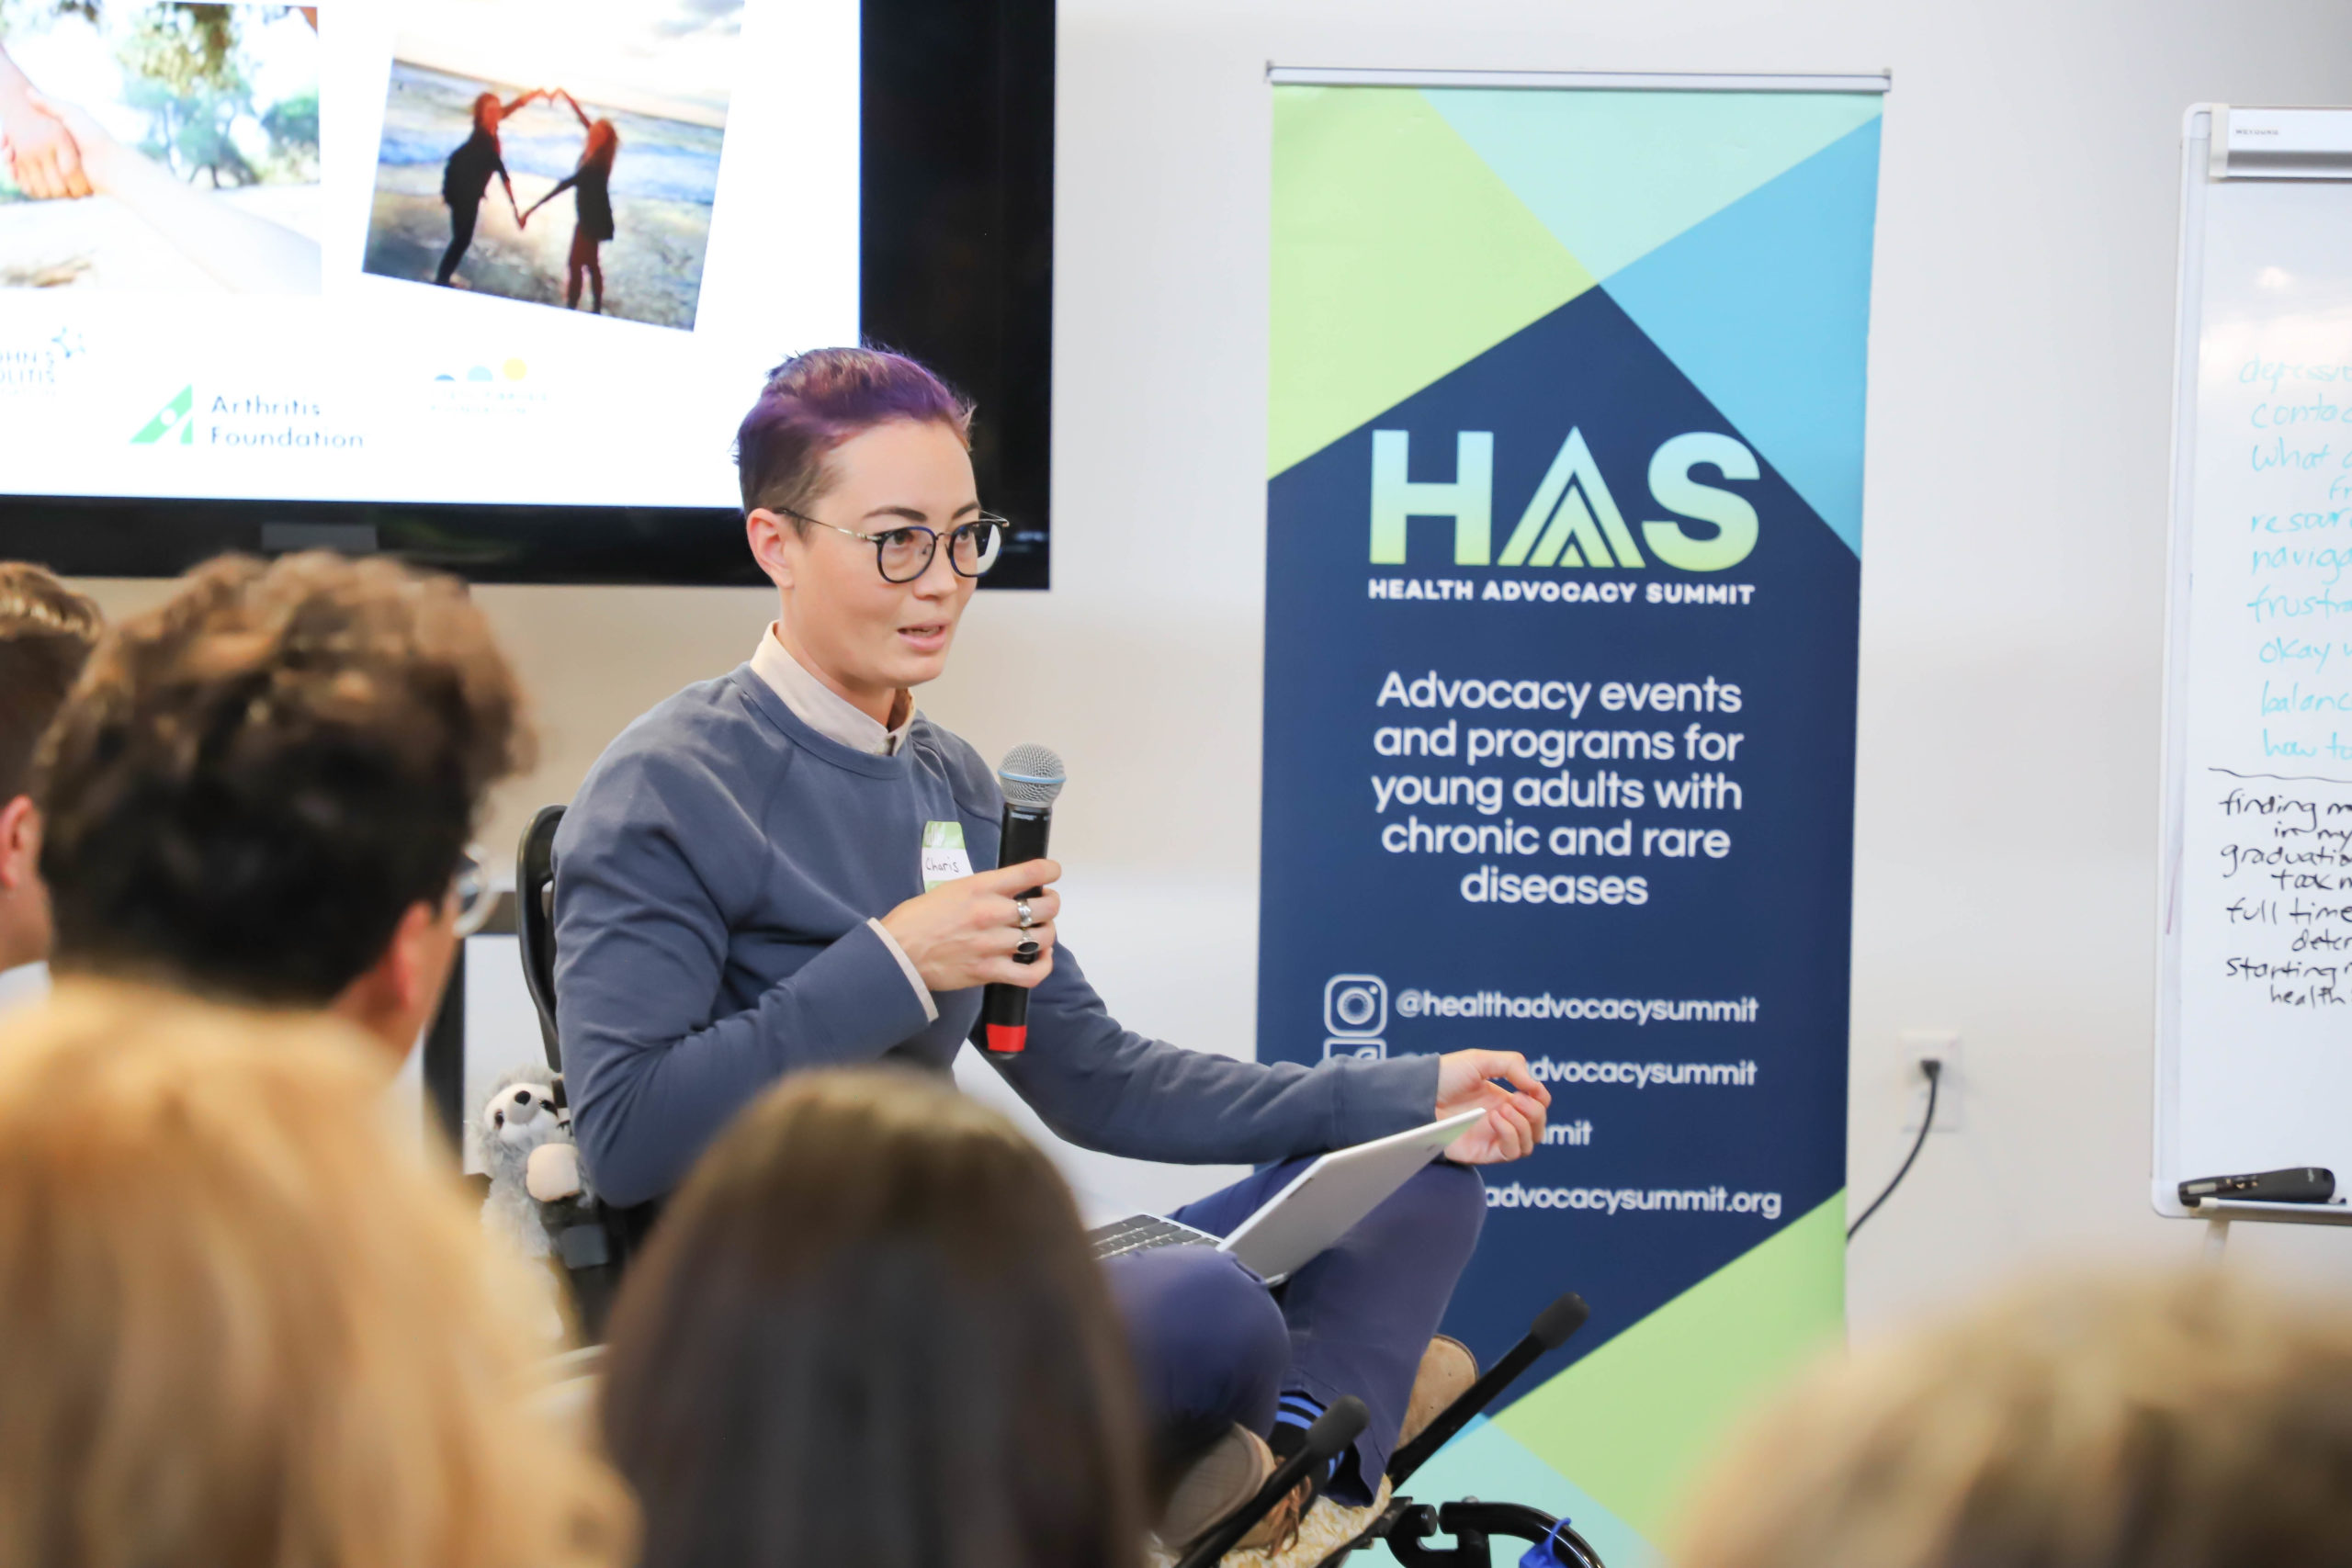 Helmsley Charitable Trust Announces Support for Health Advocacy Summit and Its Crohn's and Colitis Young Adults Network